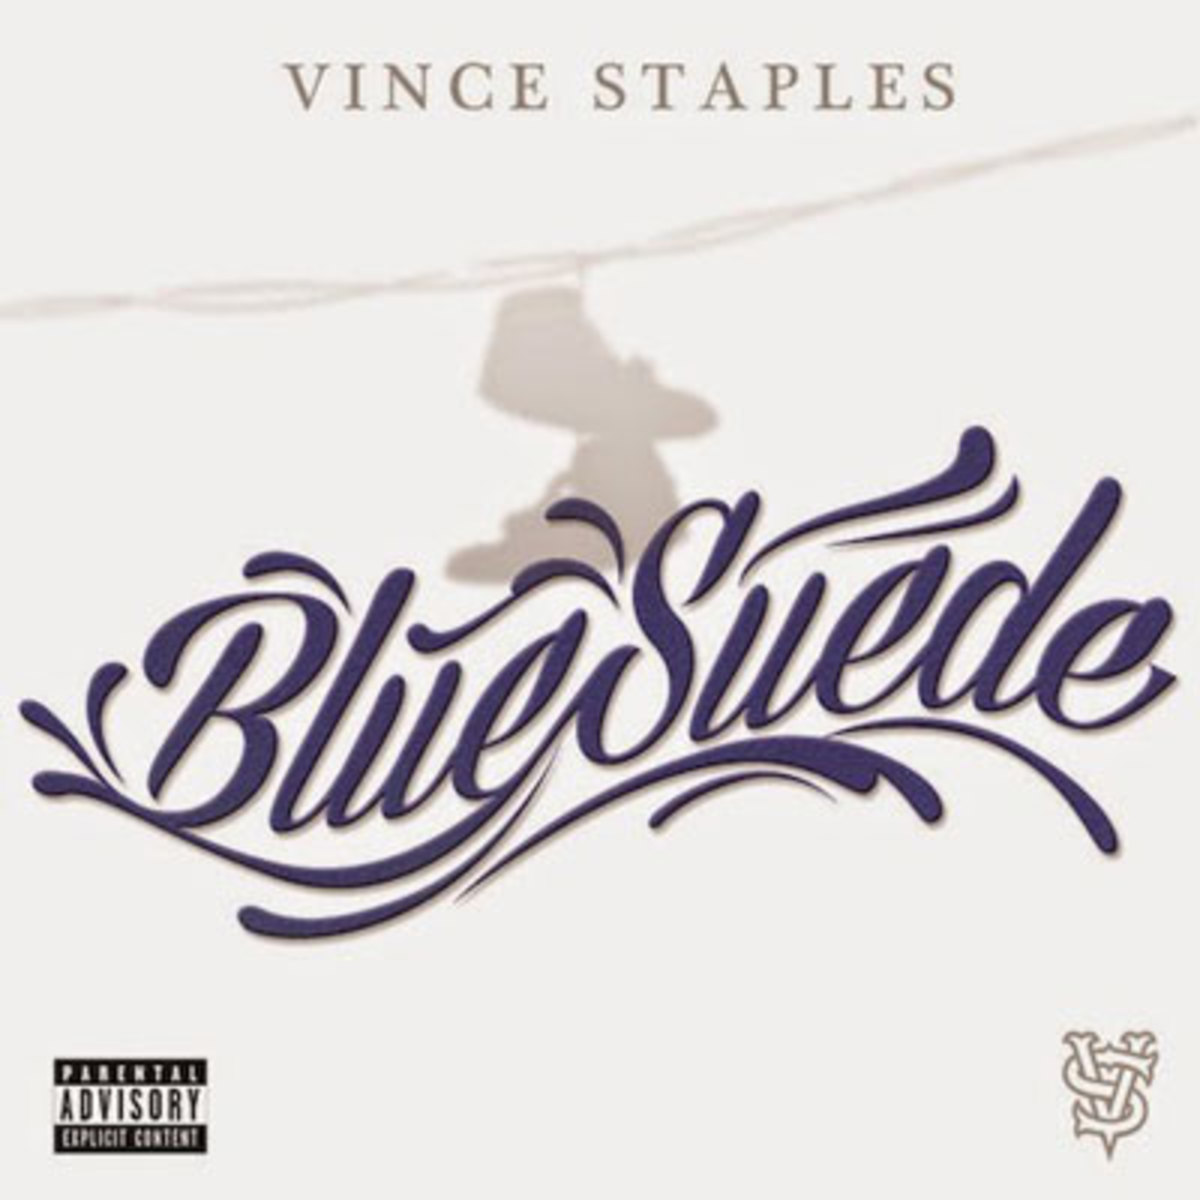 vincestaples-bluesuede.jpg